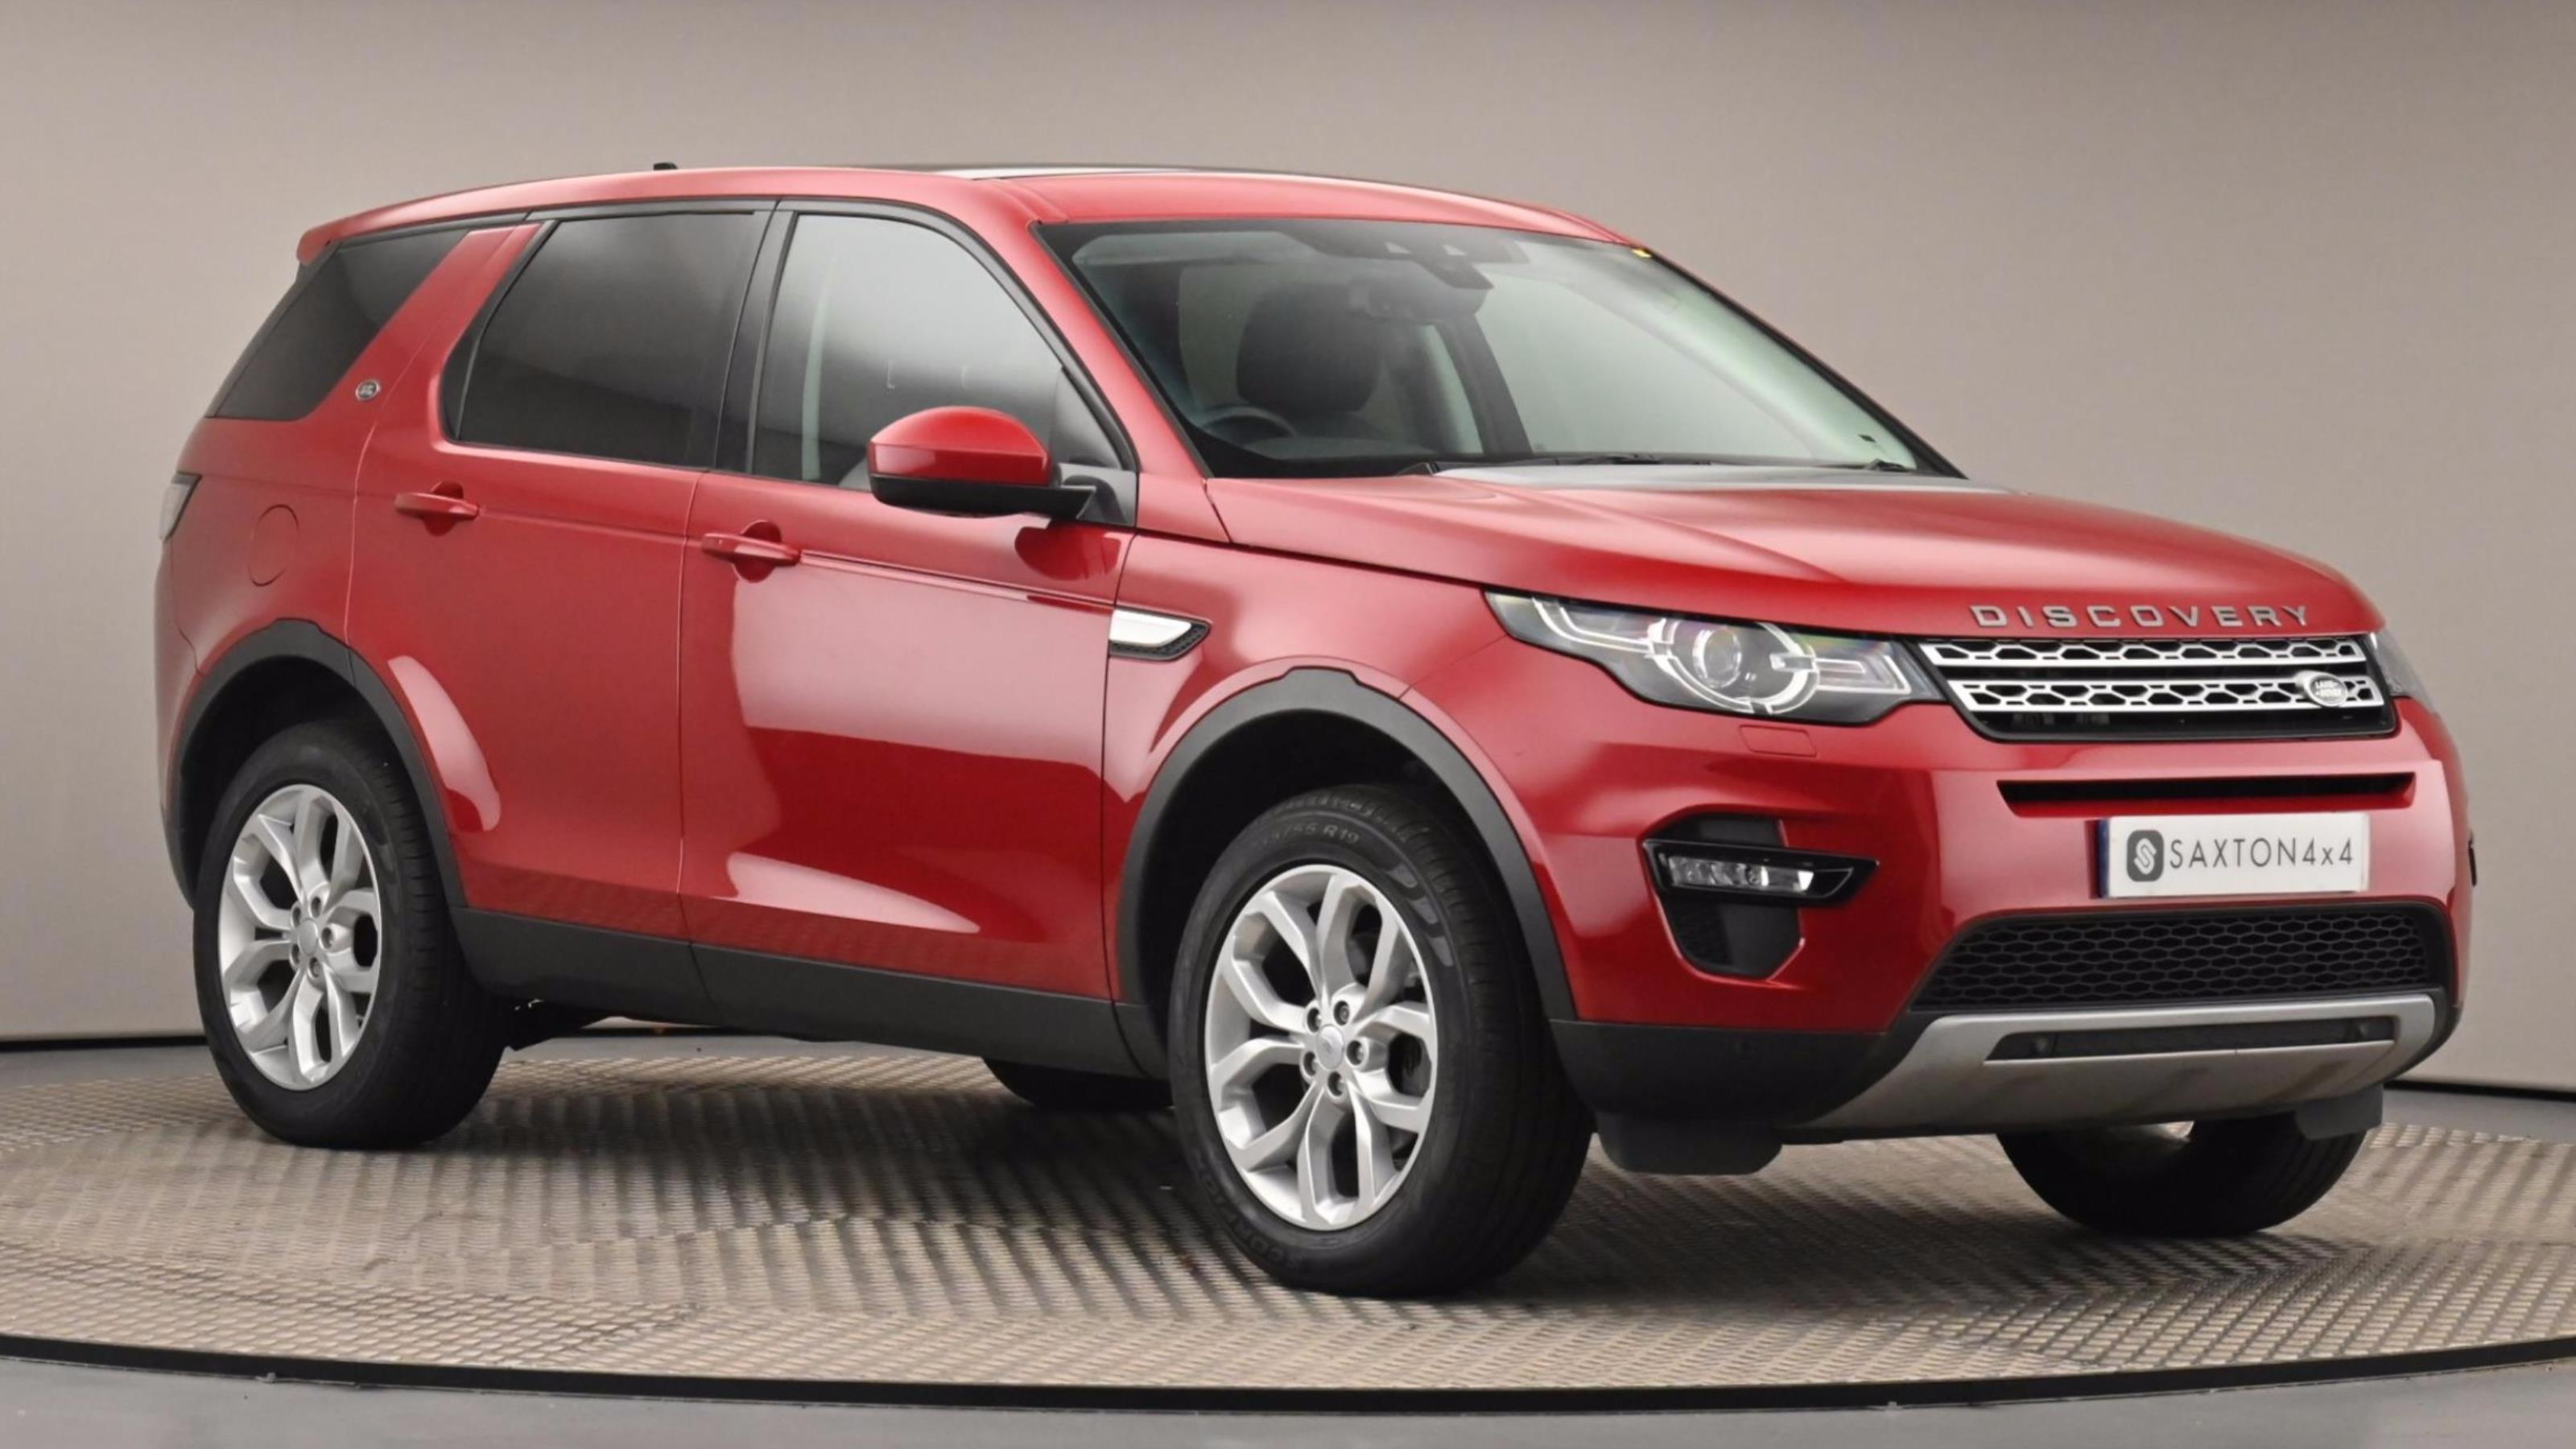 Used 16 Land Rover DISCOVERY SPORT 2.0 TD4 180 HSE 5dr Auto RED at Saxton4x4